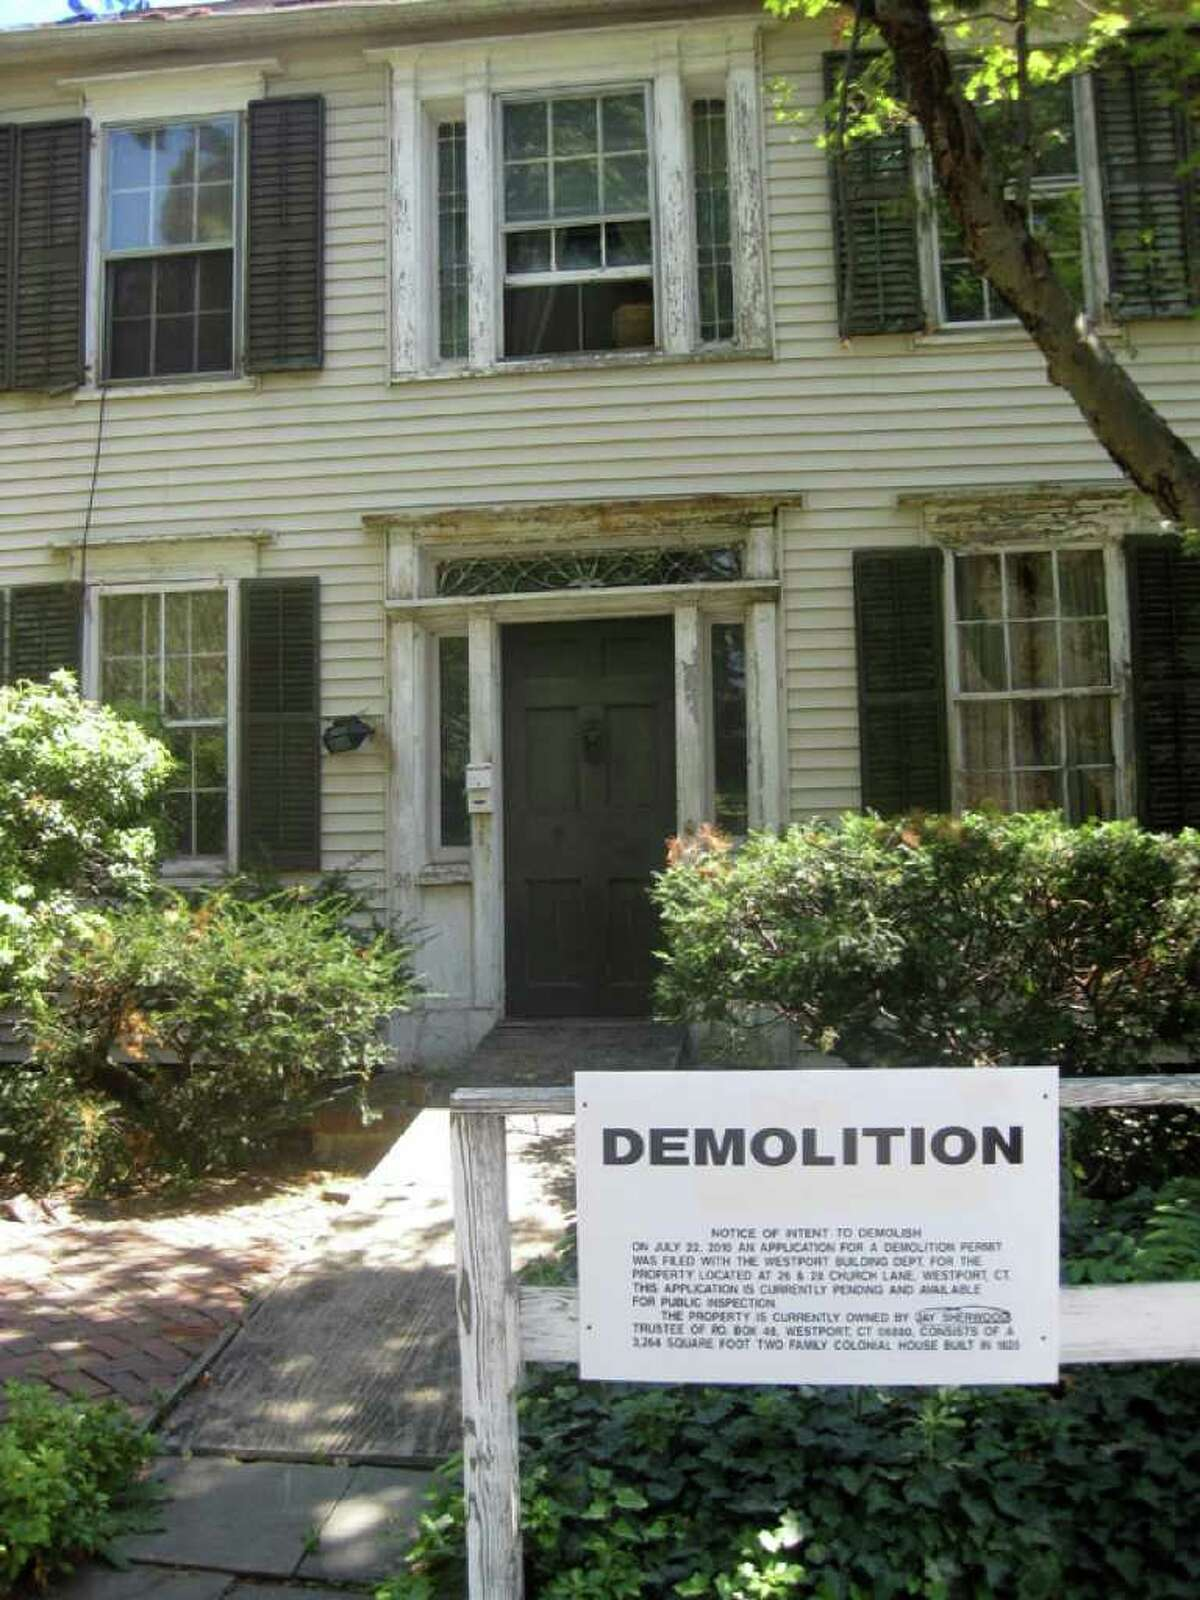 An application has been filed to demolish the approximately 200-year-old Colonial structure at 26-28 Church Lane in downtown Westport.